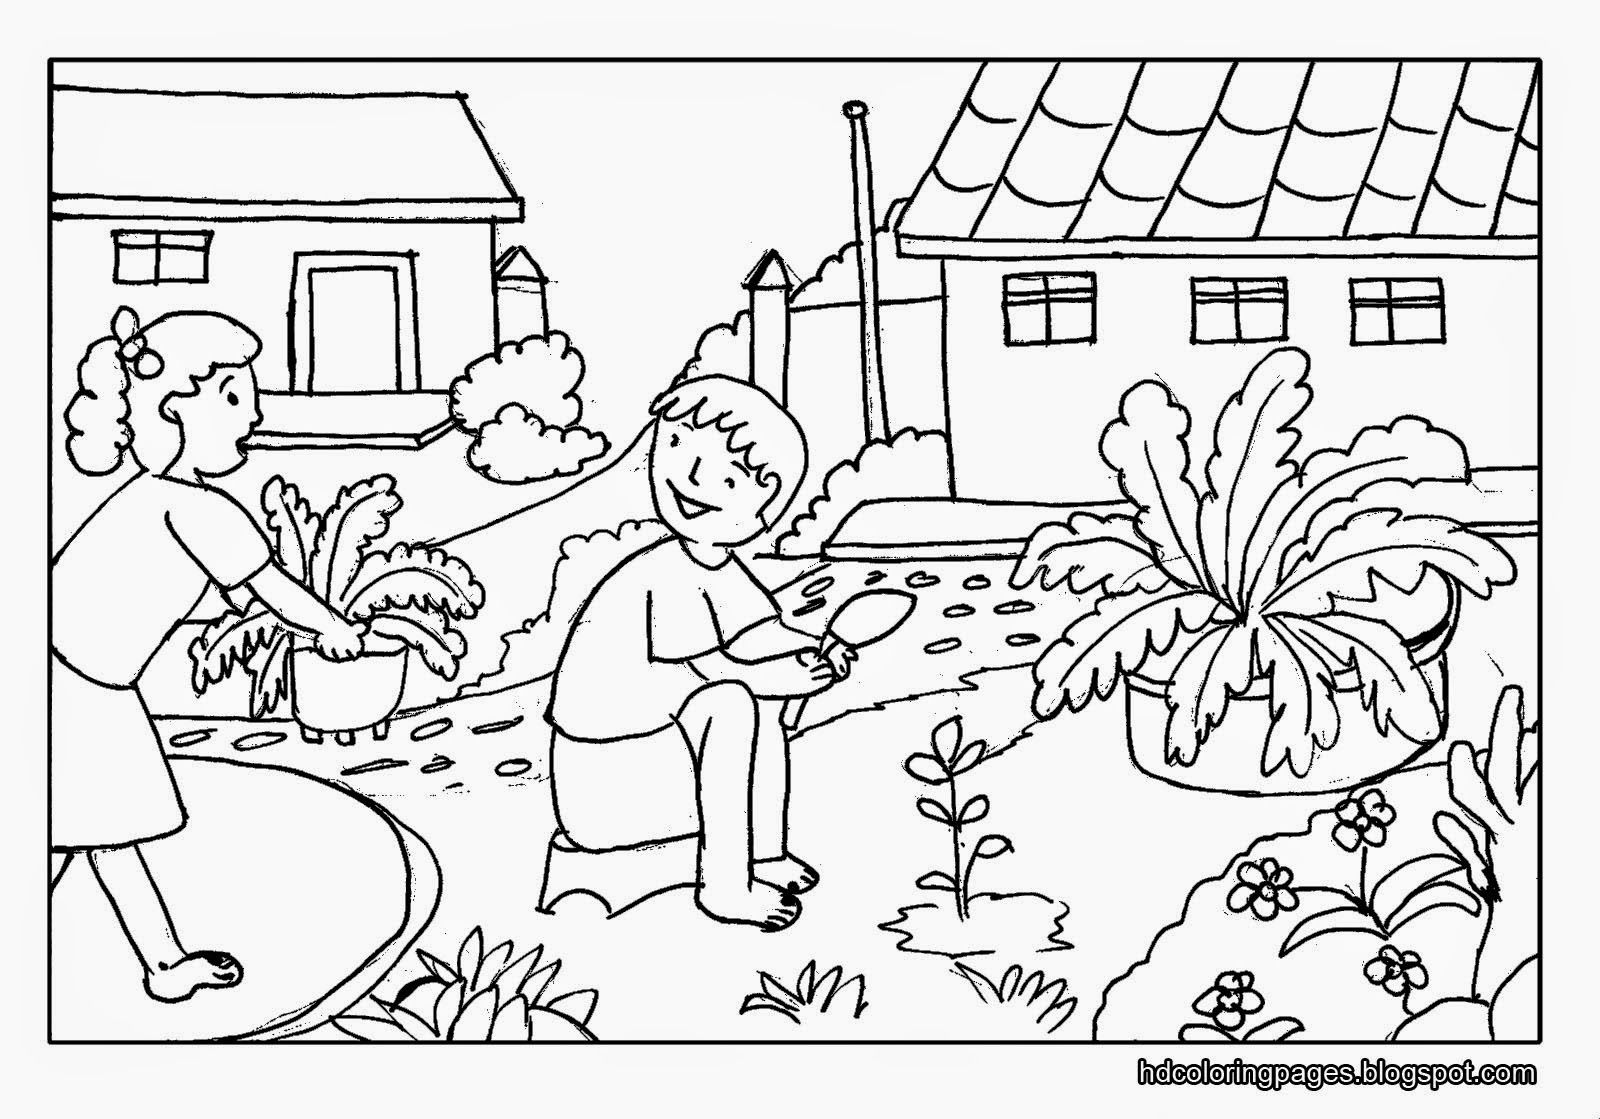 Gardening With Family Coloring Pages | Coloring Pages | Pinterest ...